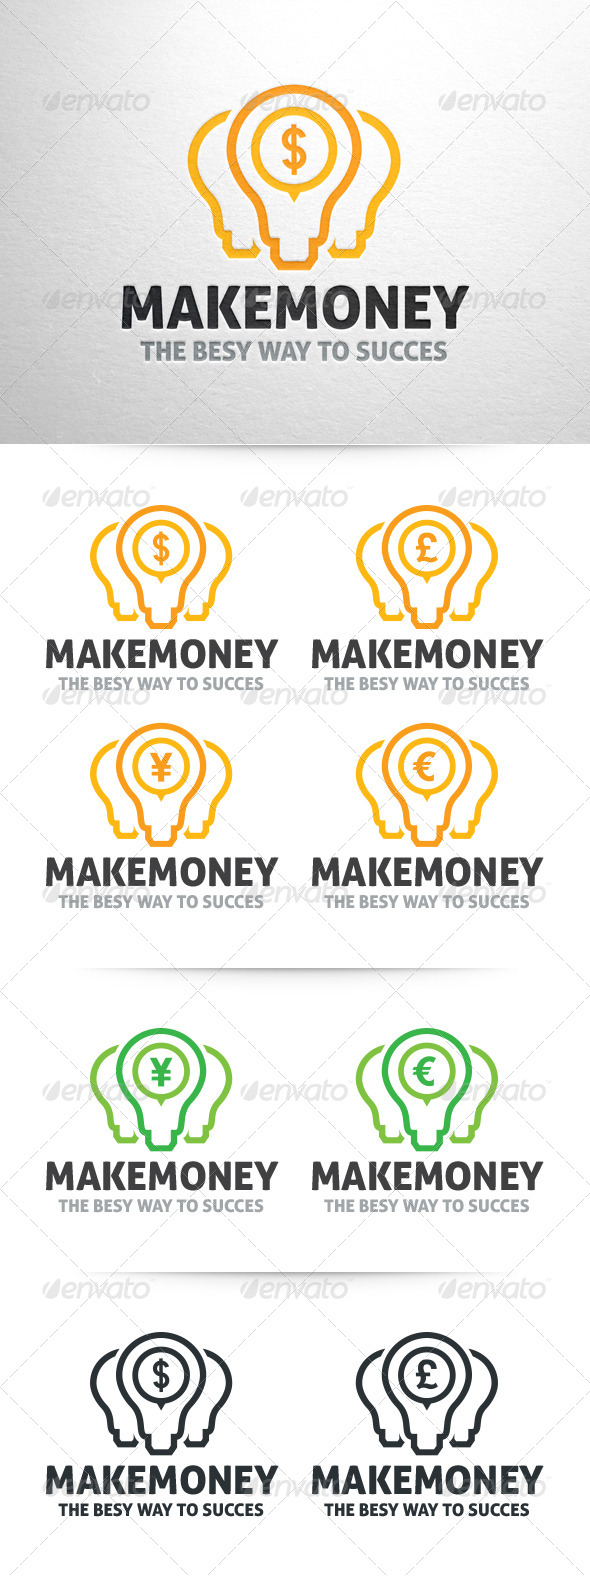 GraphicRiver Make Money Logo Template 6435732